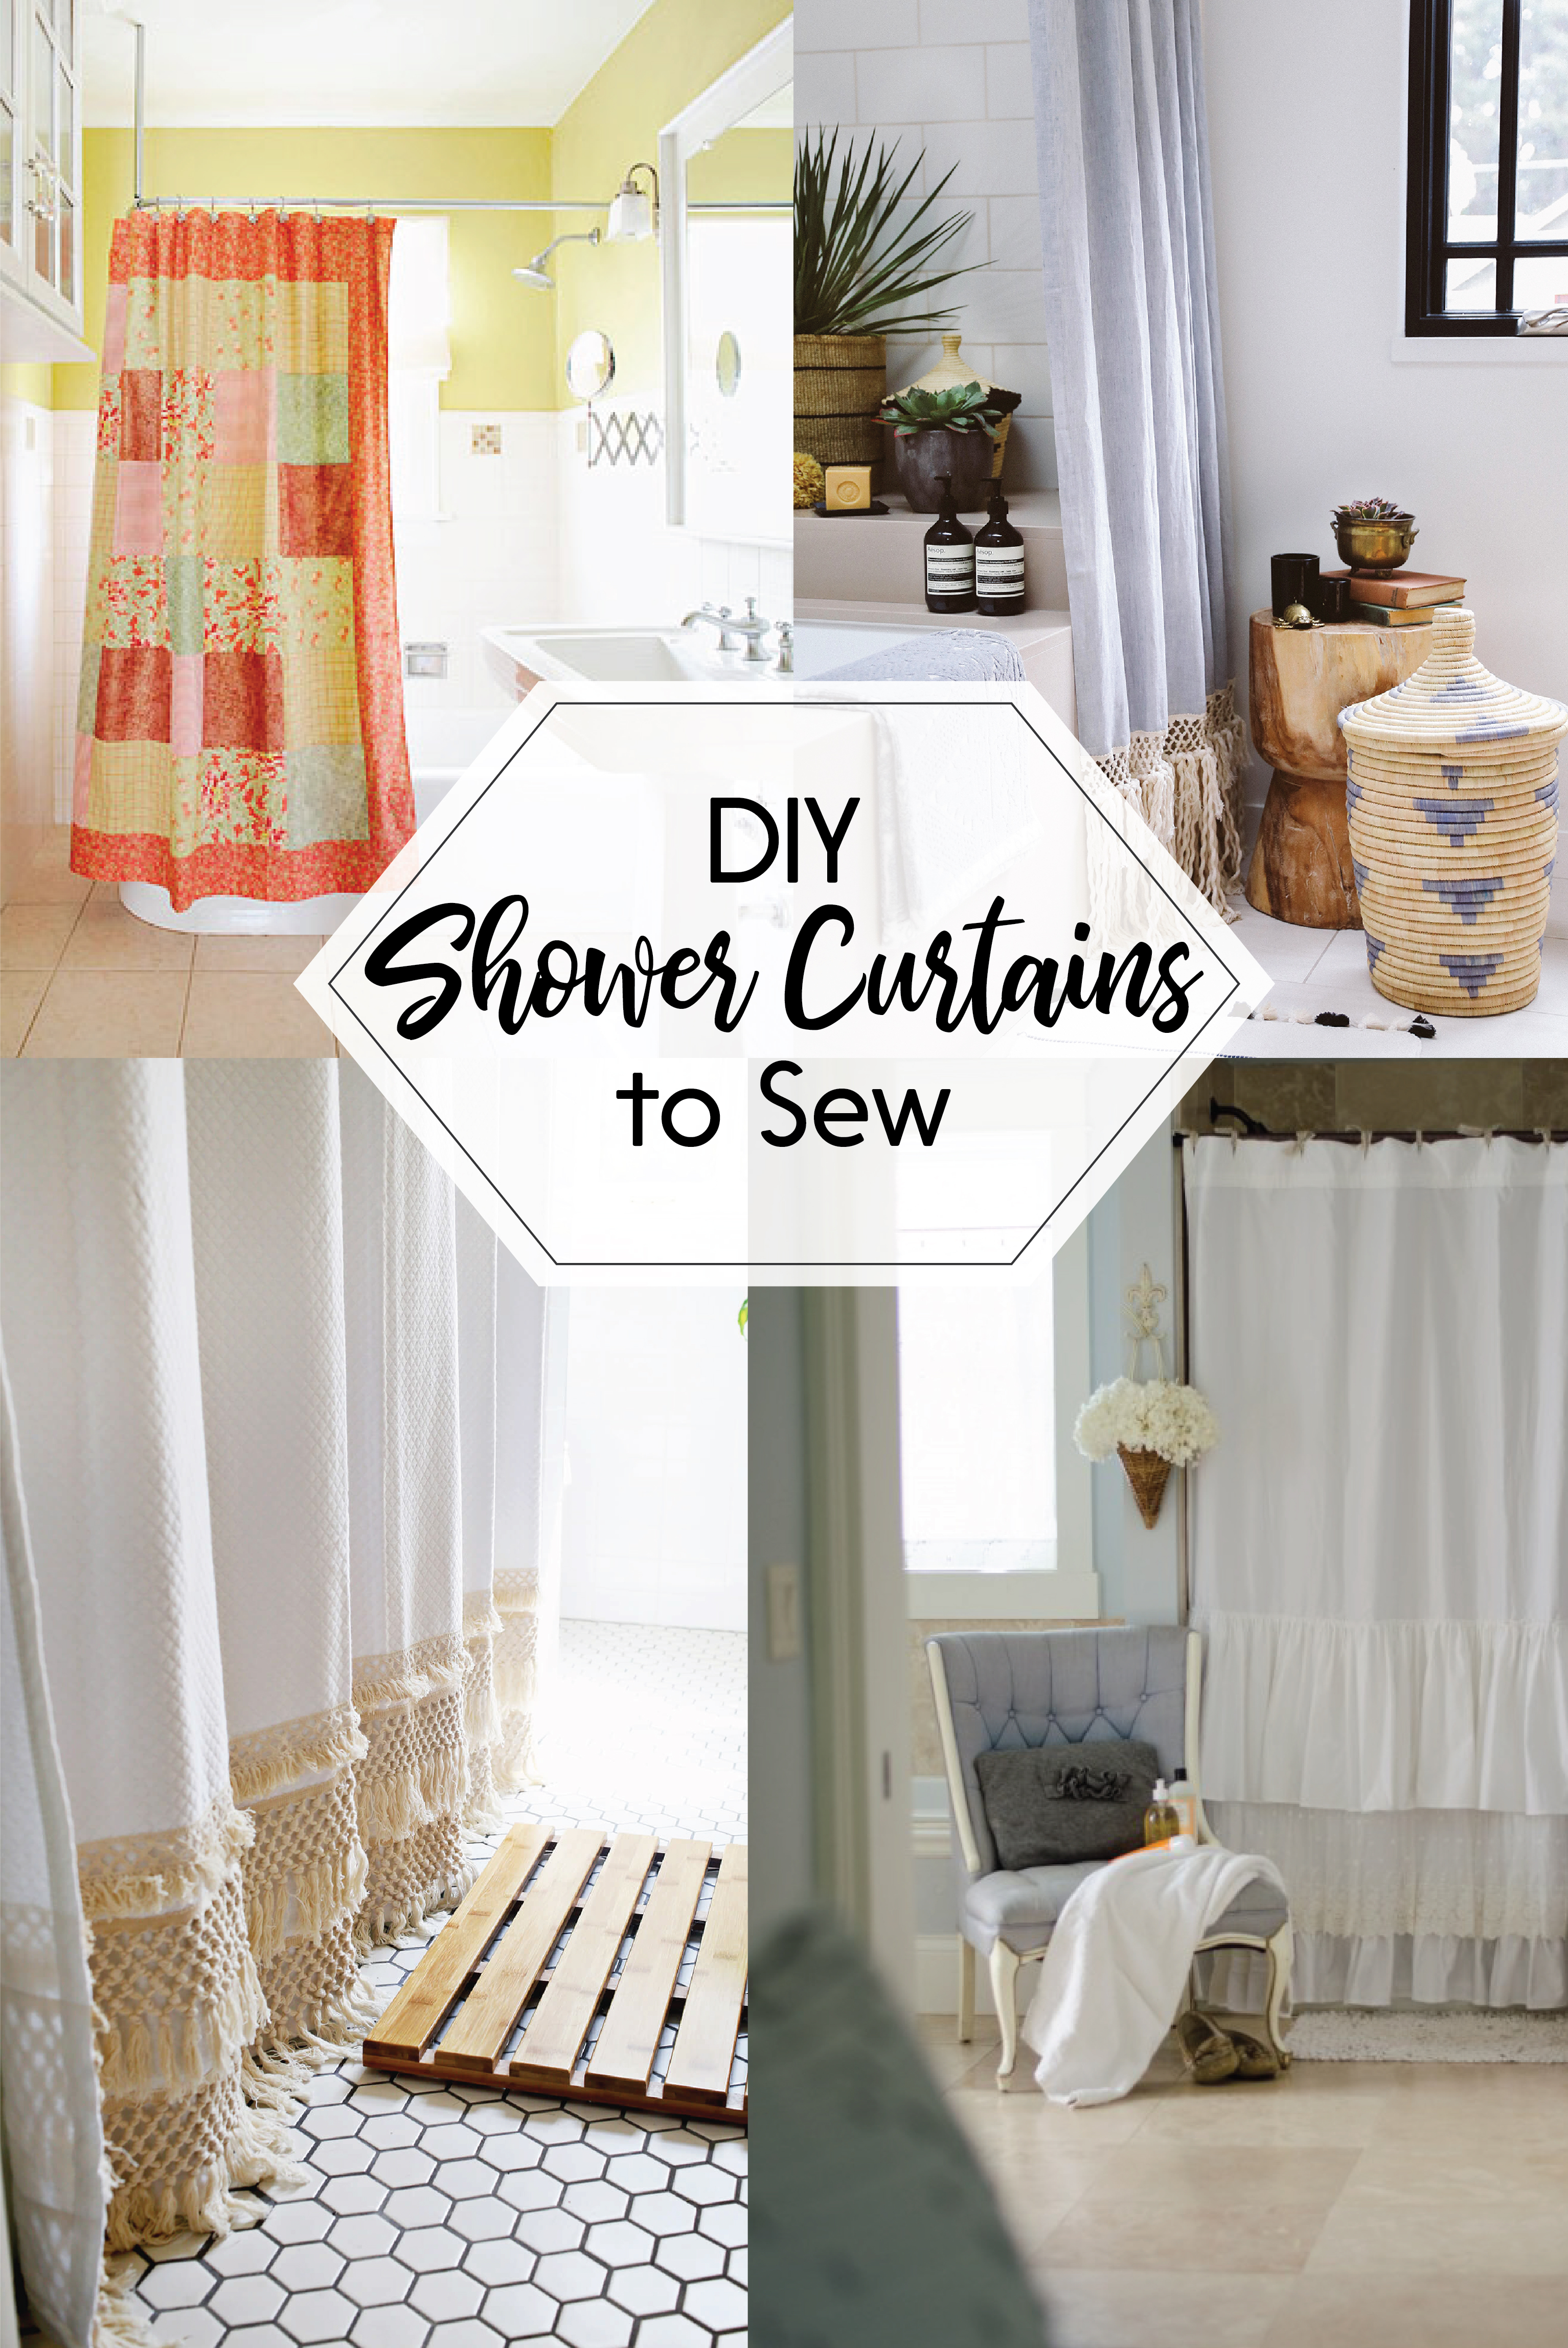 Diy Shower Curtains To Sew,Home Furniture Dining Table Designs